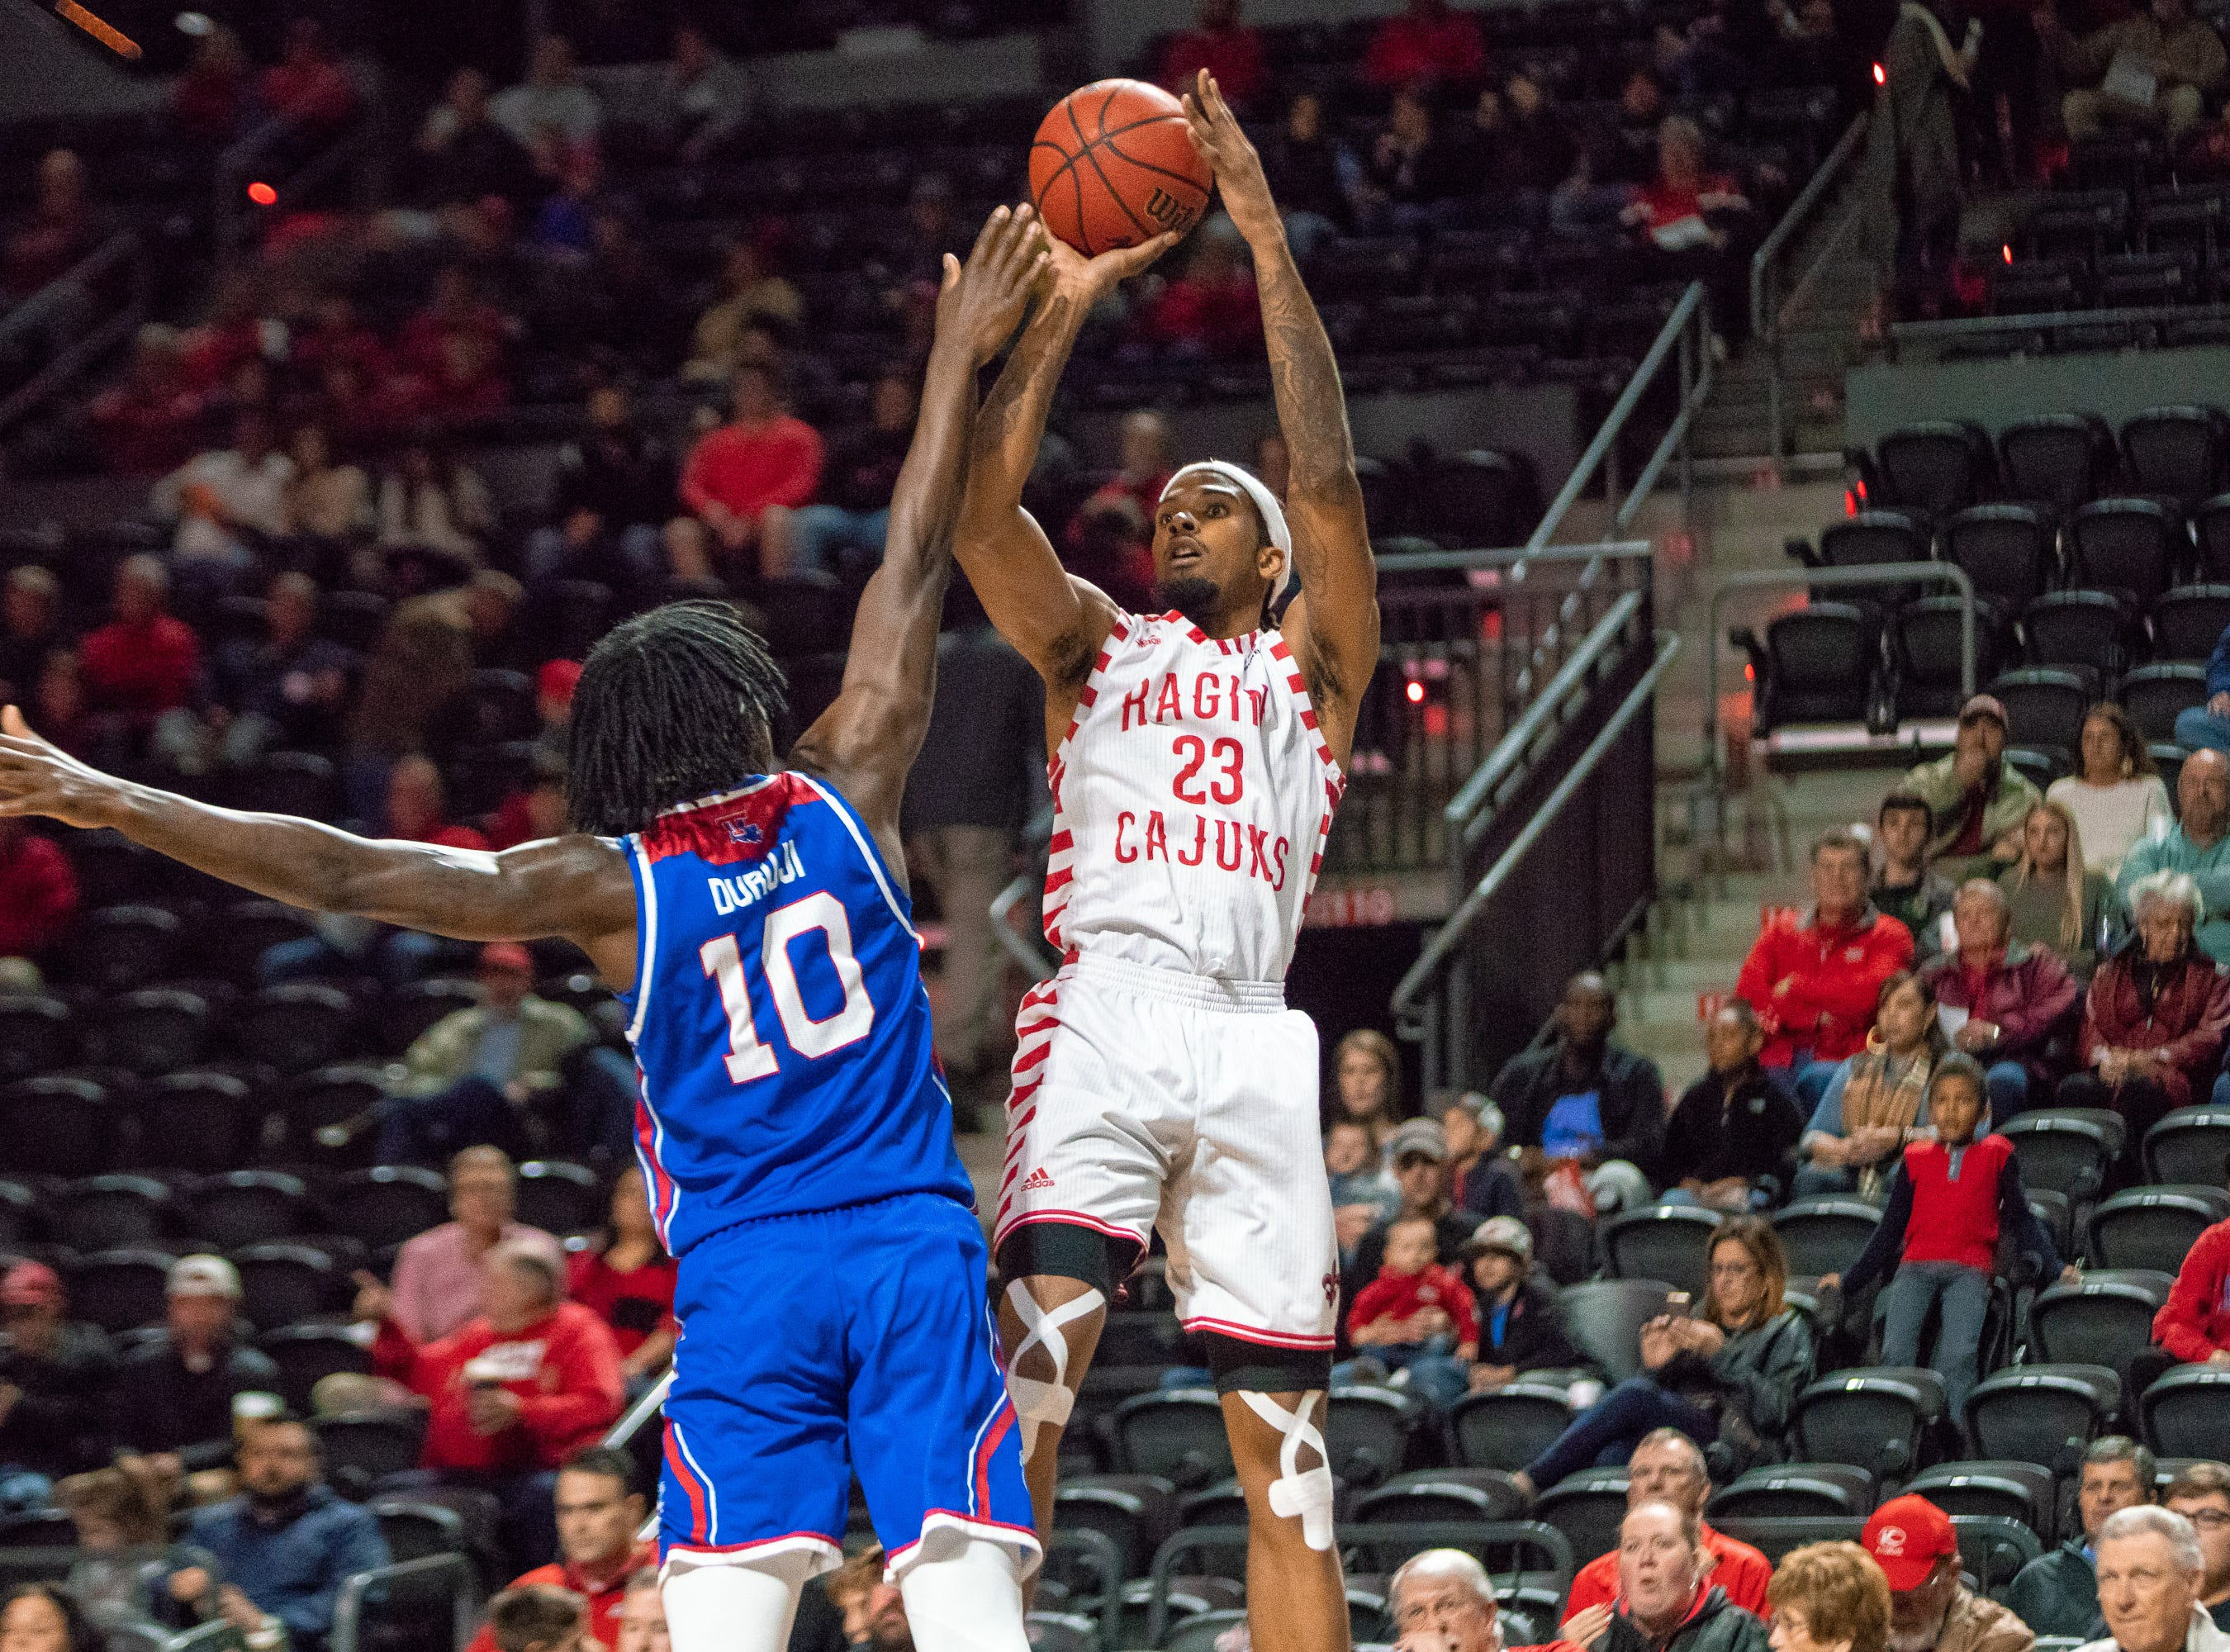 UL's Jakeenan Gant attempts to score a three-pointer as the Ragin' Cajuns take on the LA Tech Bulldogs at the Cajundome on December 15, 2018.